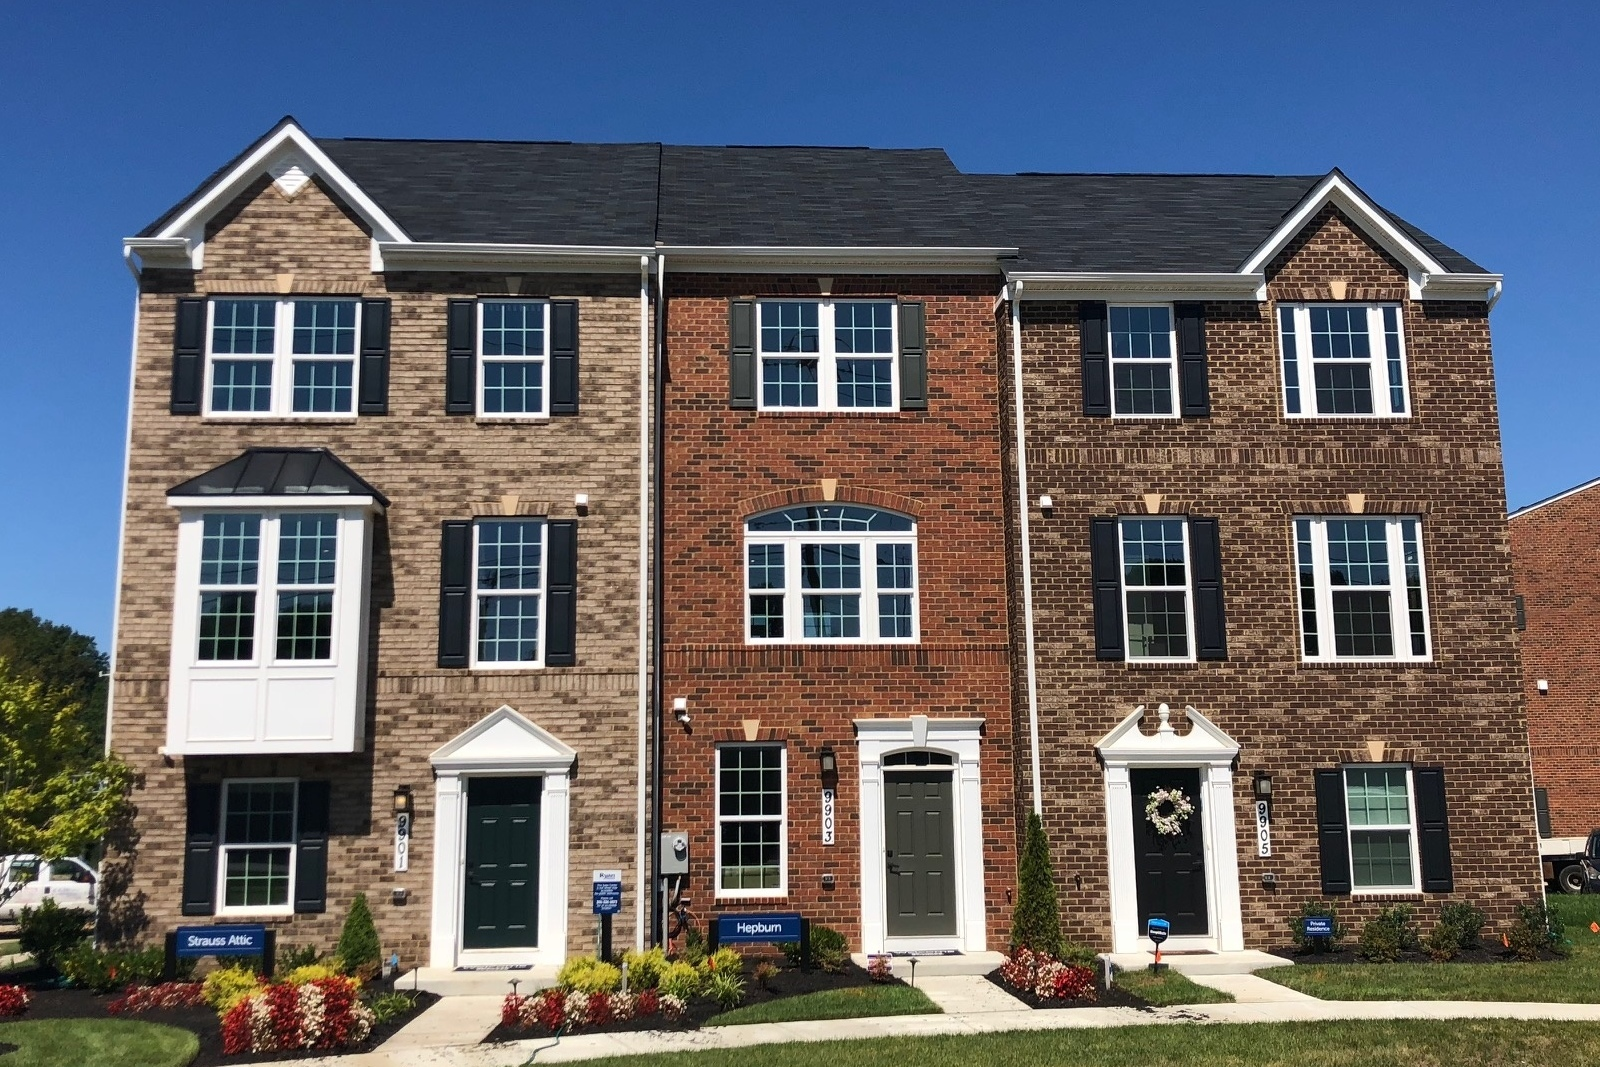 New Homes For Sale At Largo Crescent In Largo Md Within The Prince